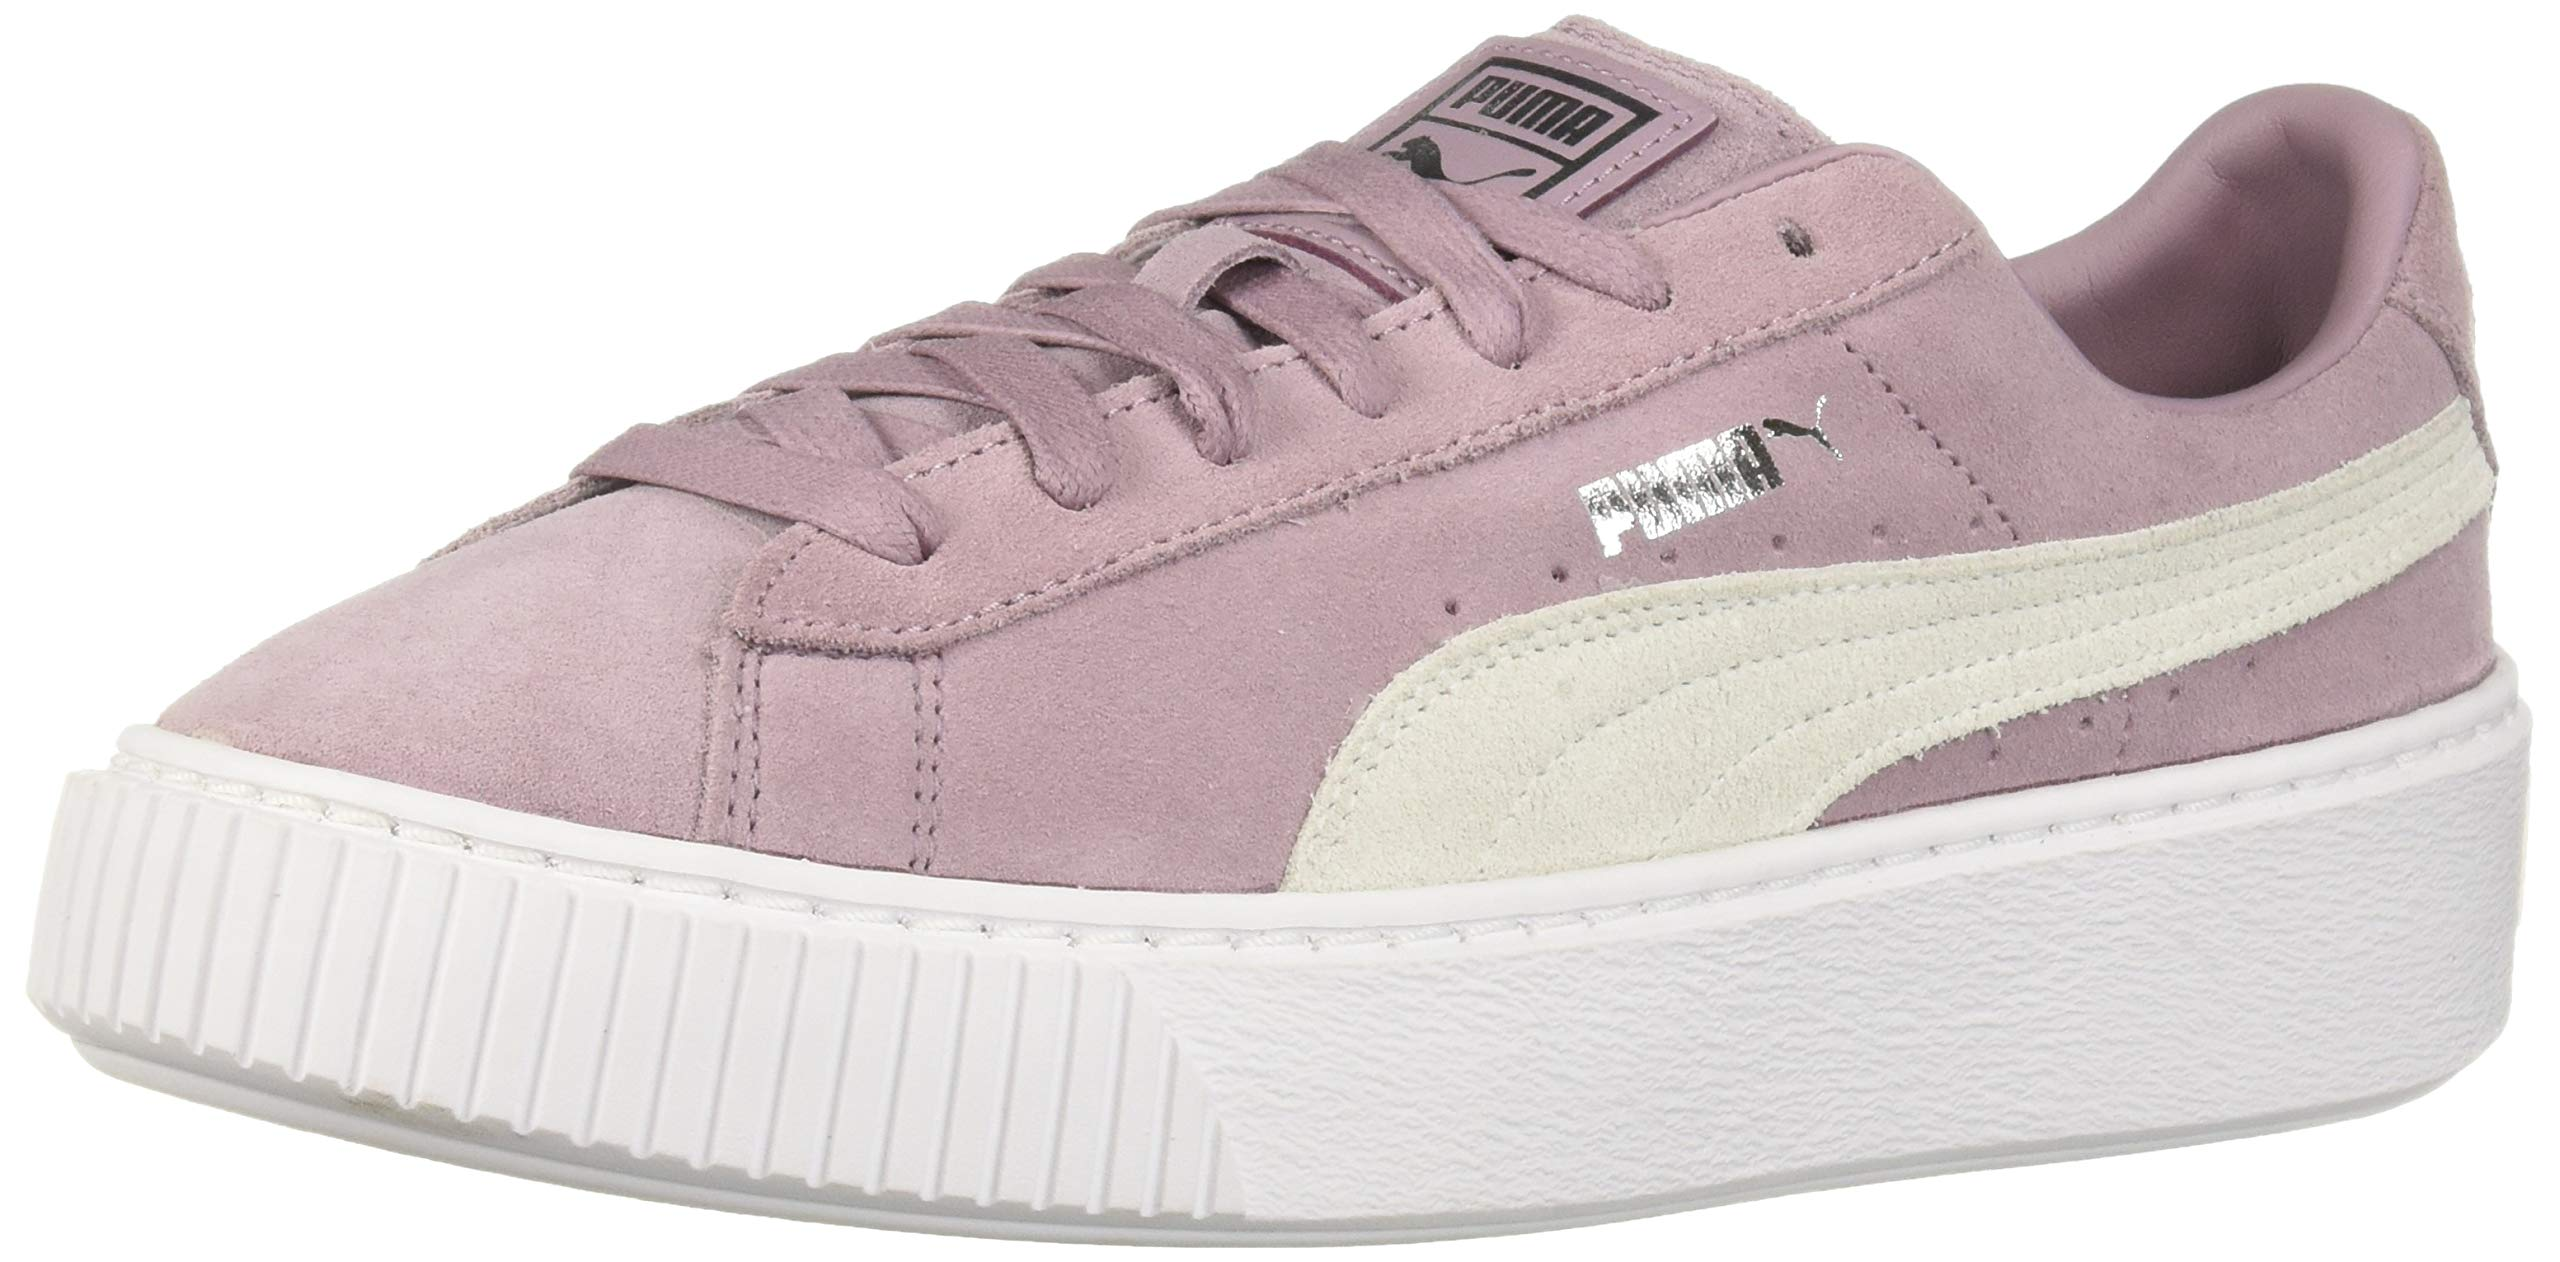 Galleon PUMA Women's Suede Platform Sneaker, Elderberry